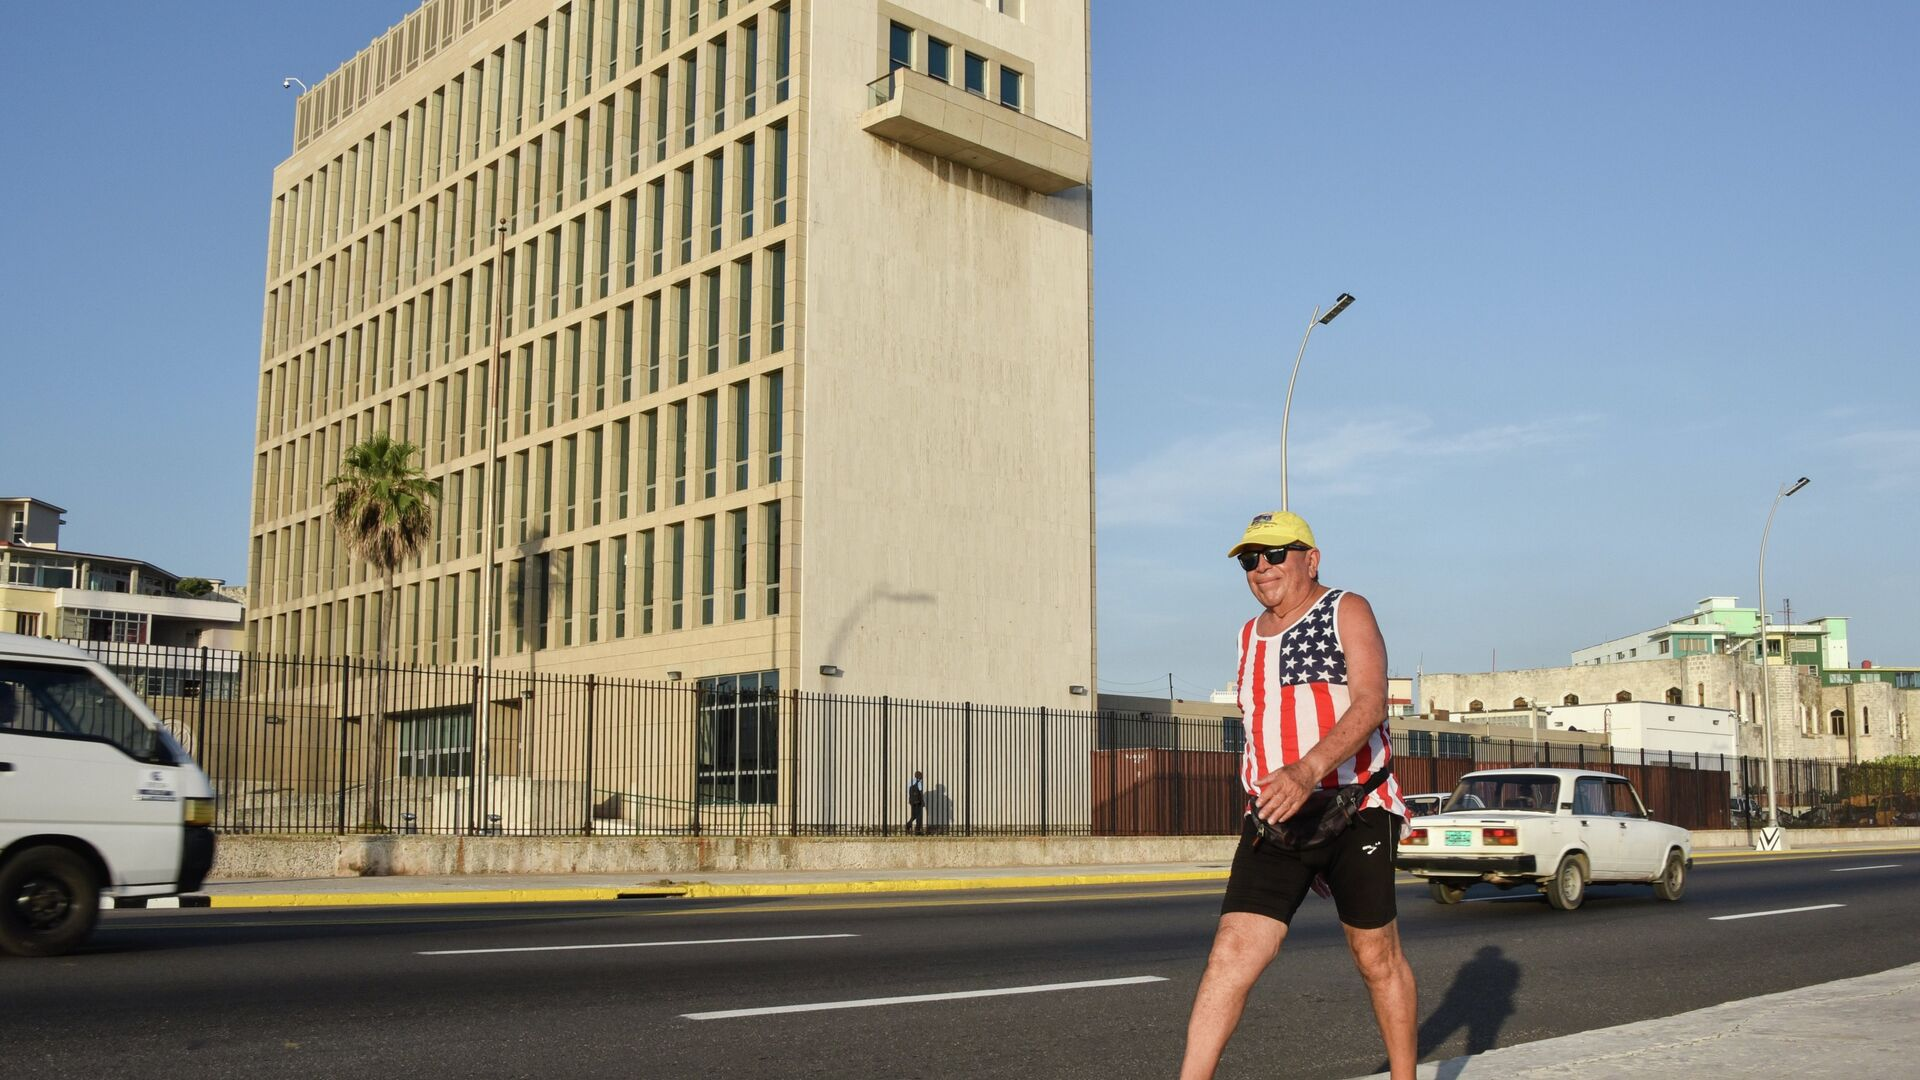 A man wearing a sleeveless shirt with the US flag walks along the Malecon seafront near the US Embassy, on July 20, 2015. T - Sputnik Mundo, 1920, 22.04.2021